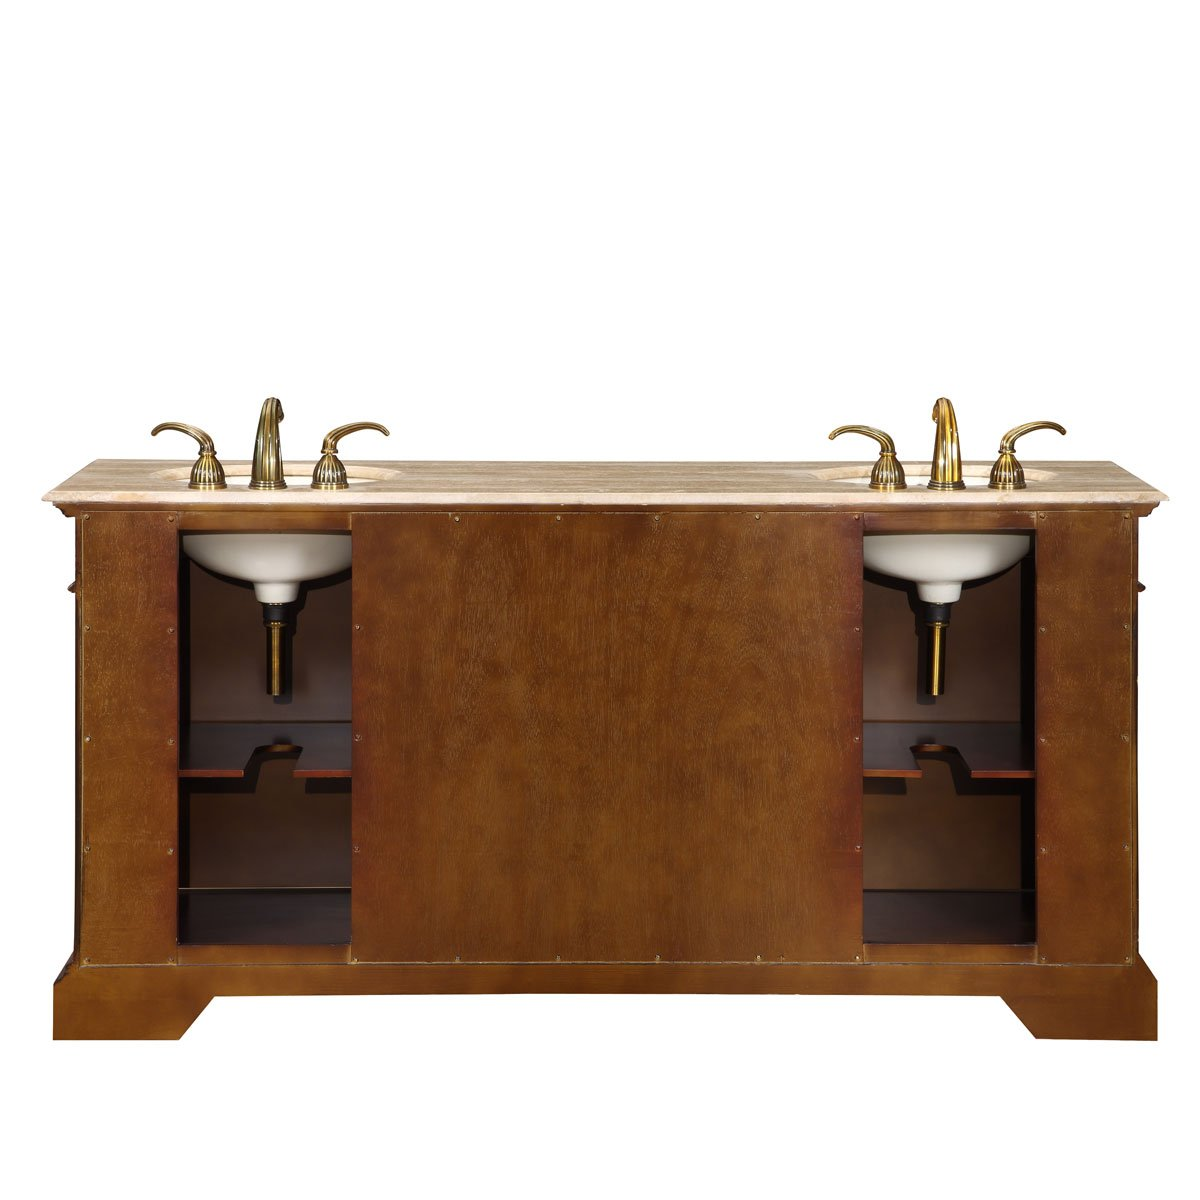 Silkroad Exclusive LTP-0176-T-UIC-72 Cynthia 72 Double Sink Cabinet with 4 Drawers 2 Doors Travertine Top and Undermount Ivory Ceramic Sinks (3-Hole) in Dark Chestnut by HF Gallery by HF Gallery